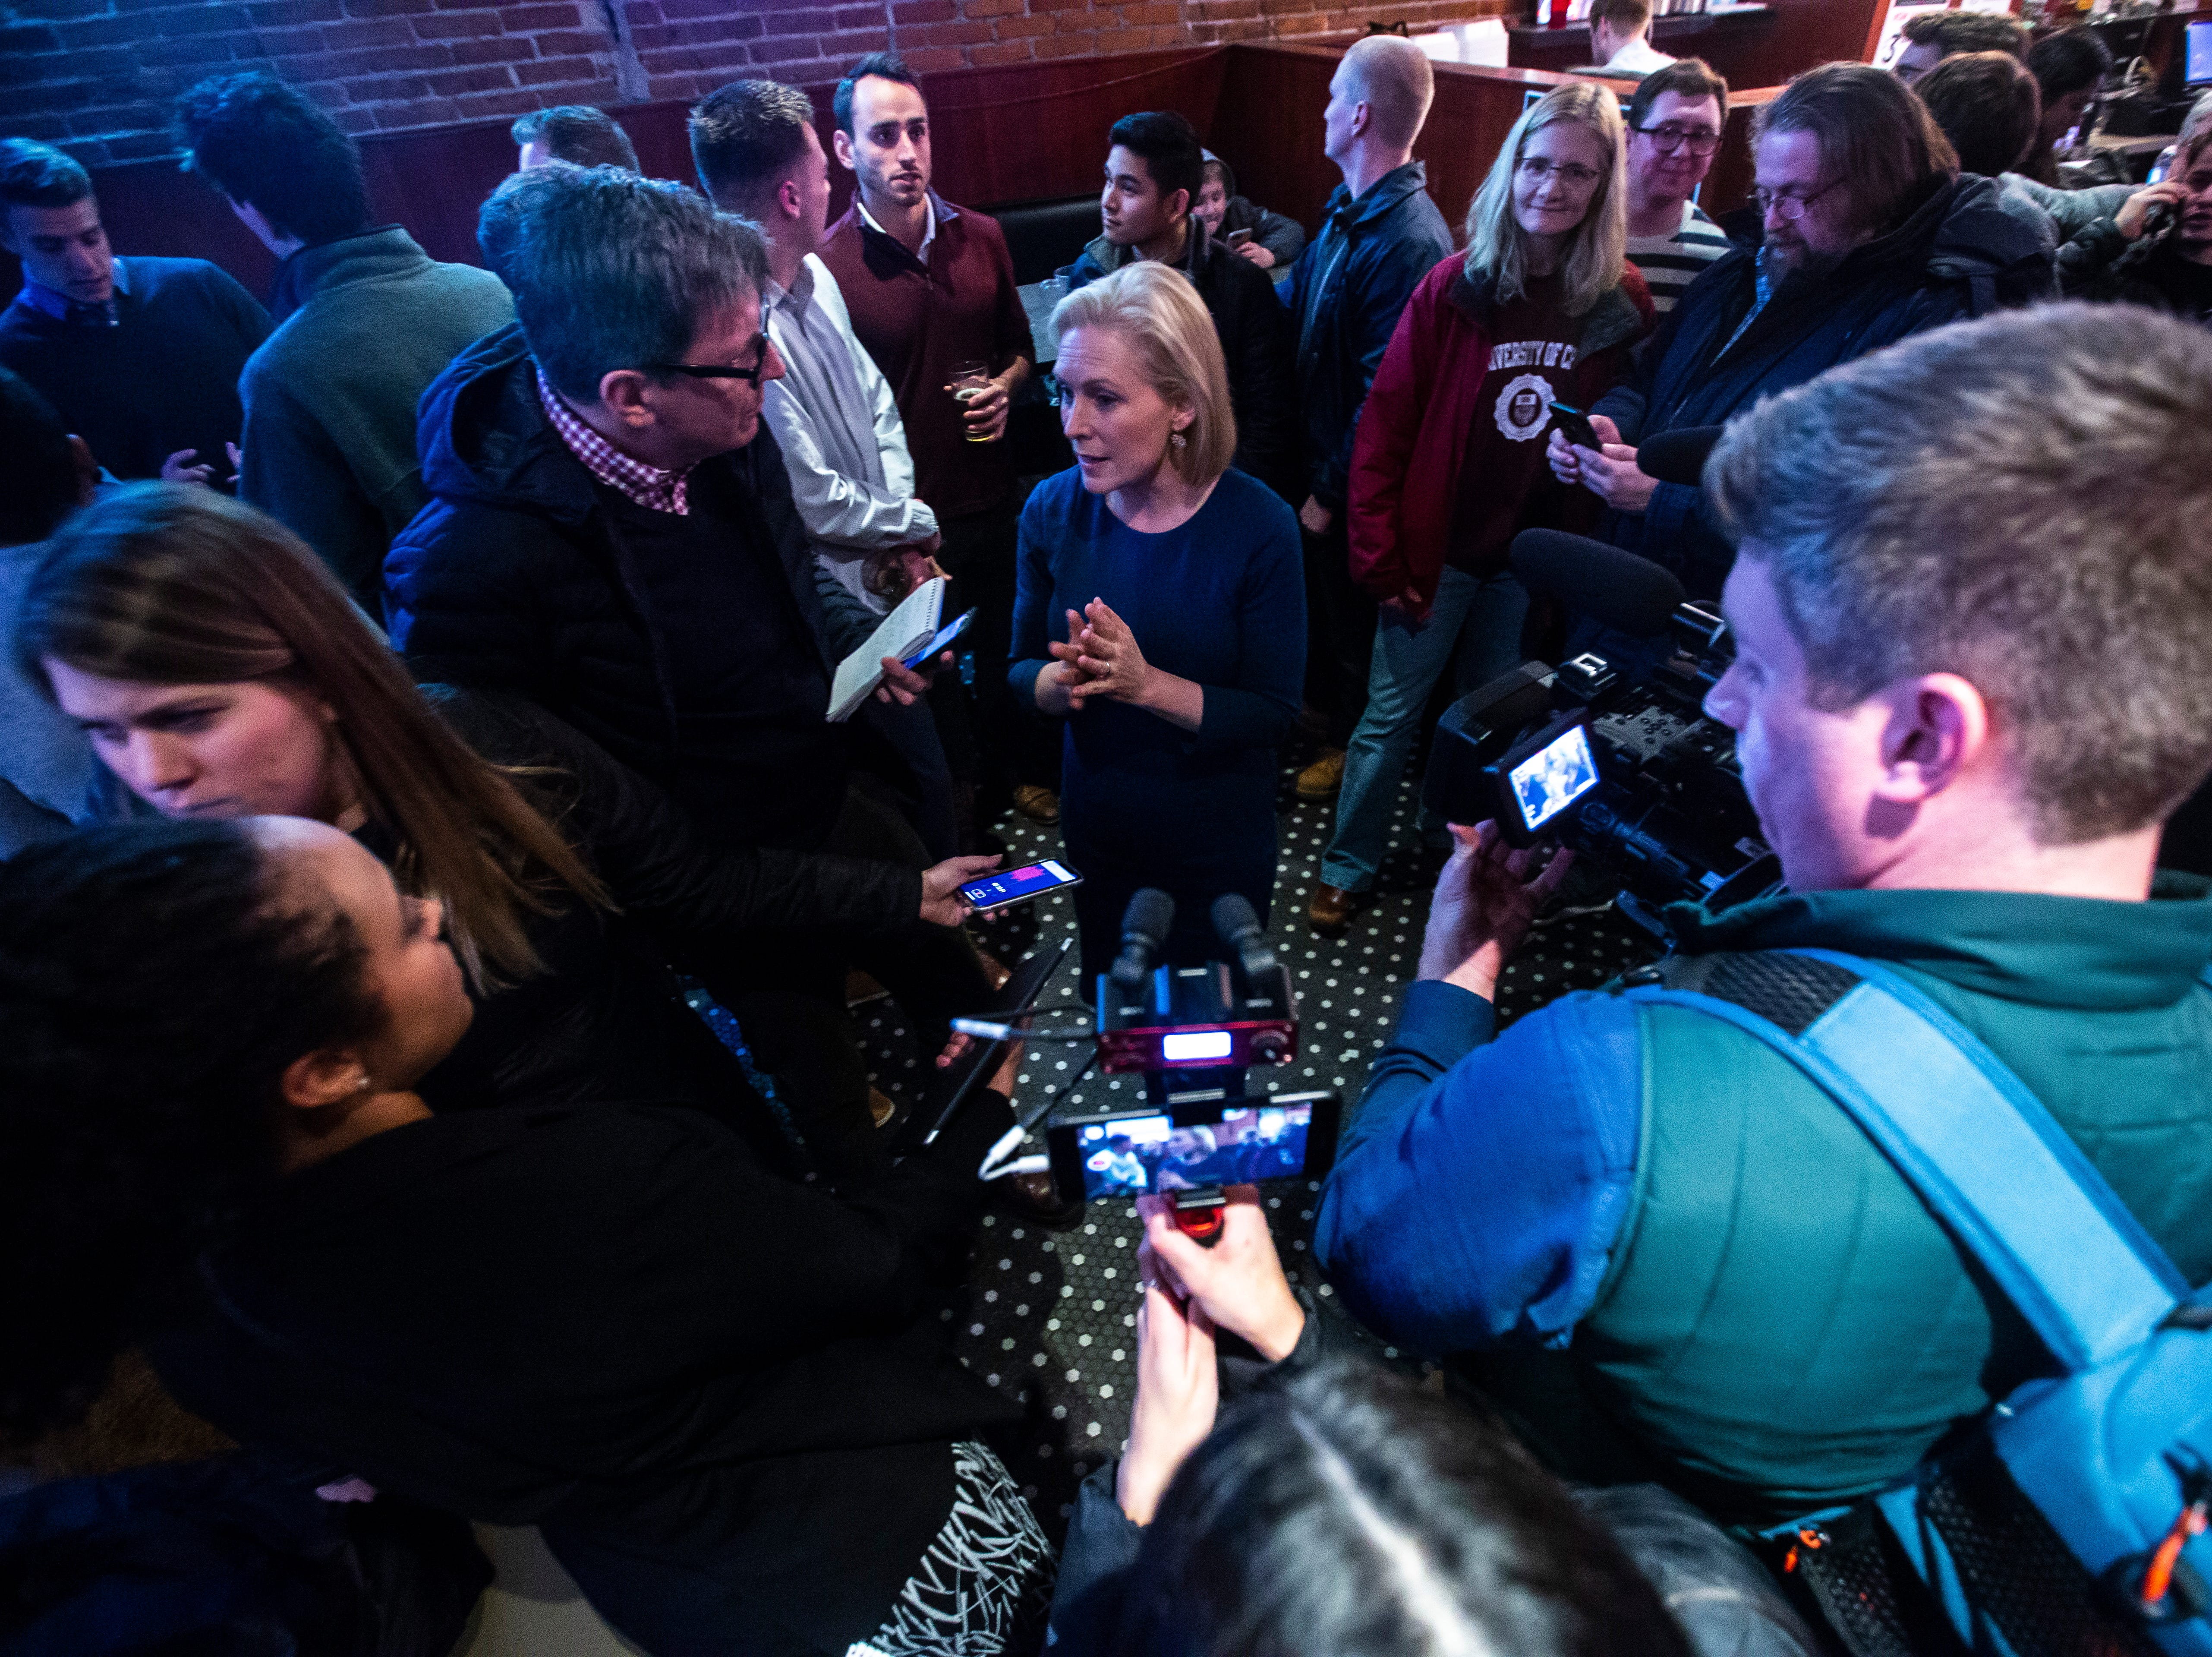 U.S. Sen. Kirsten Gillibrand, D-NY, talks with reporters during a campaign event on Monday, Feb. 18, 2019 at The Airliner in Iowa City, Iowa.